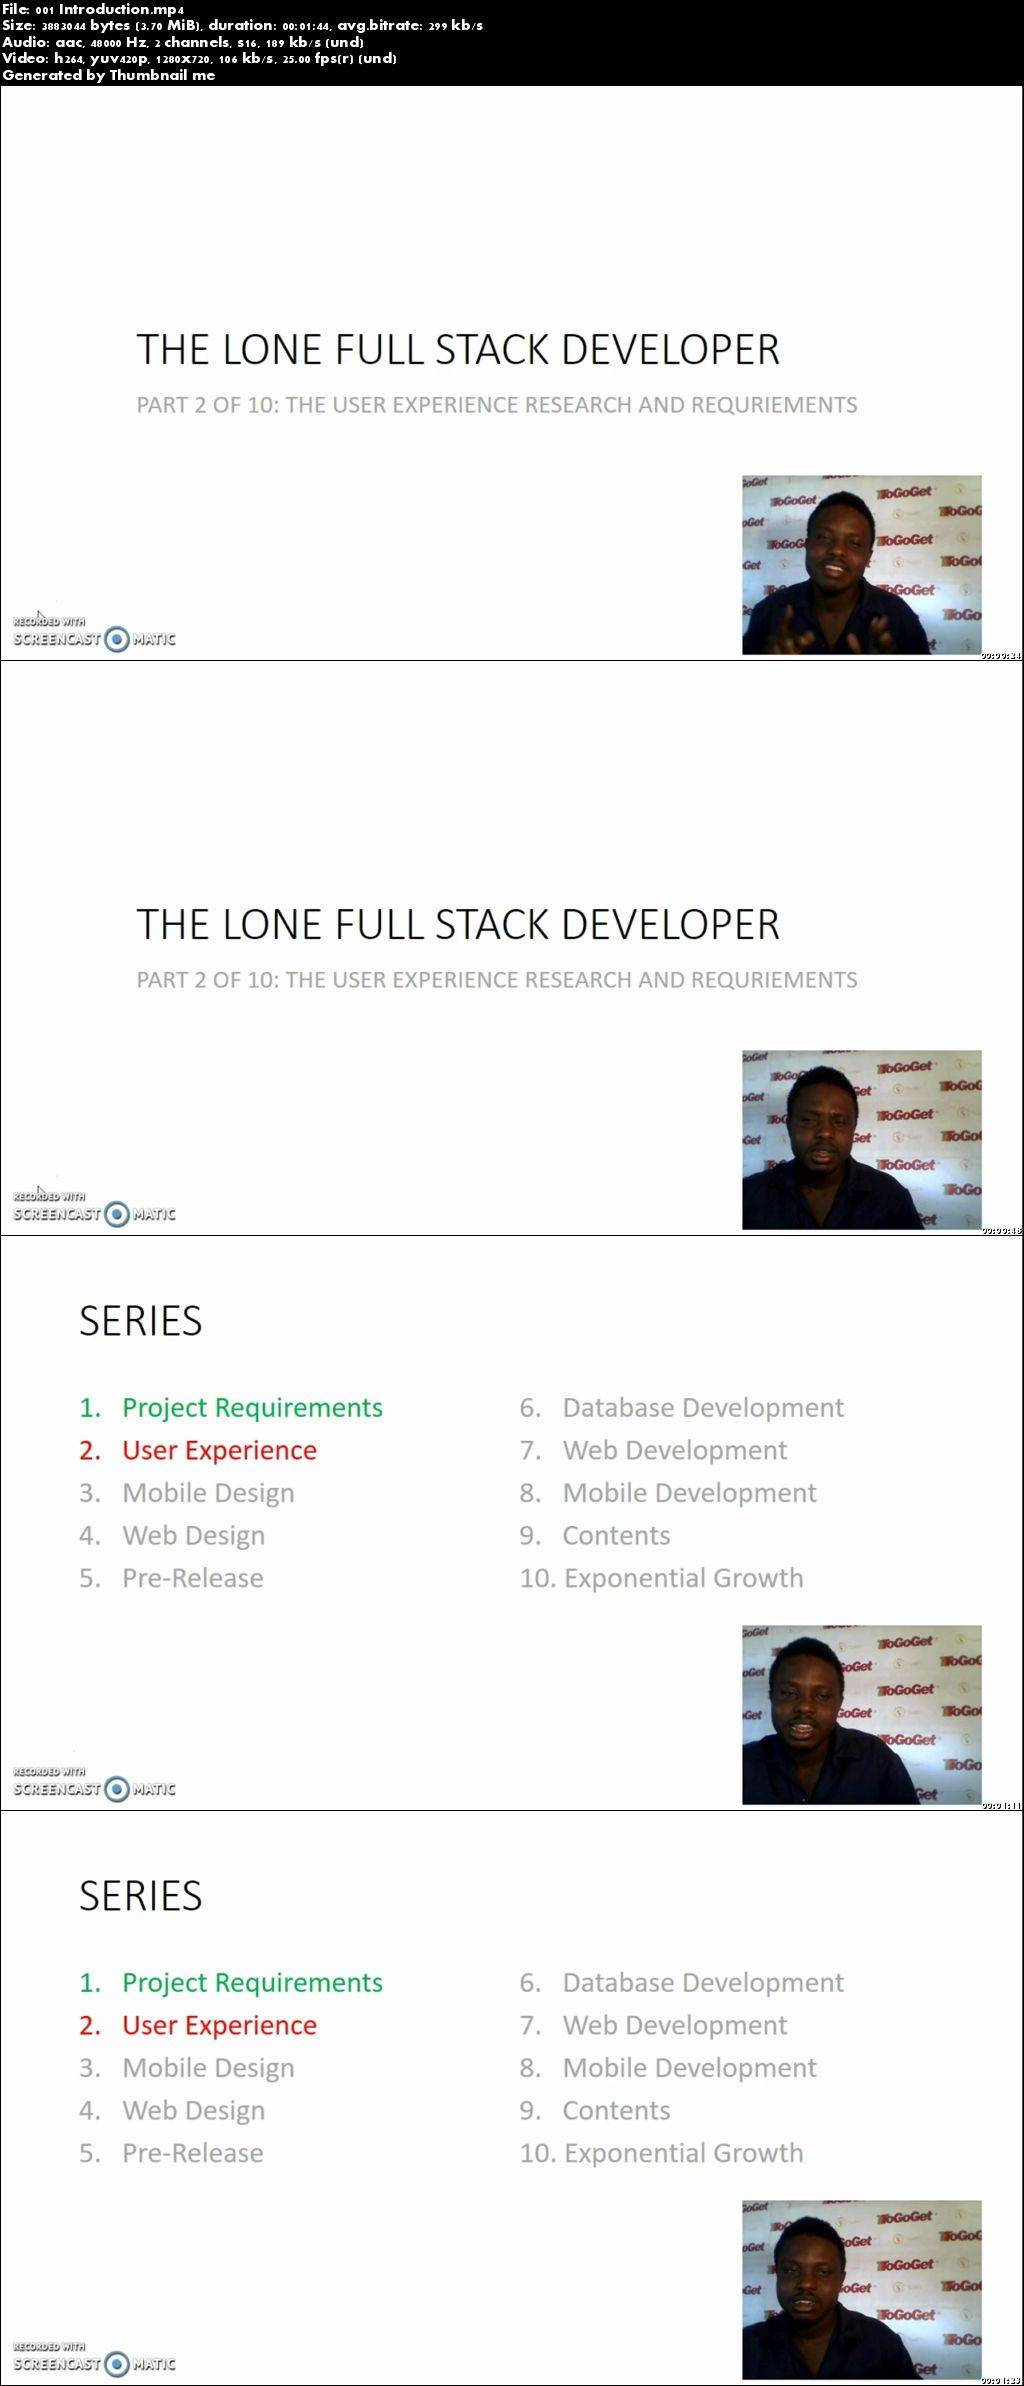 The Lone Full Stack Developer: Part 2 The User Experience